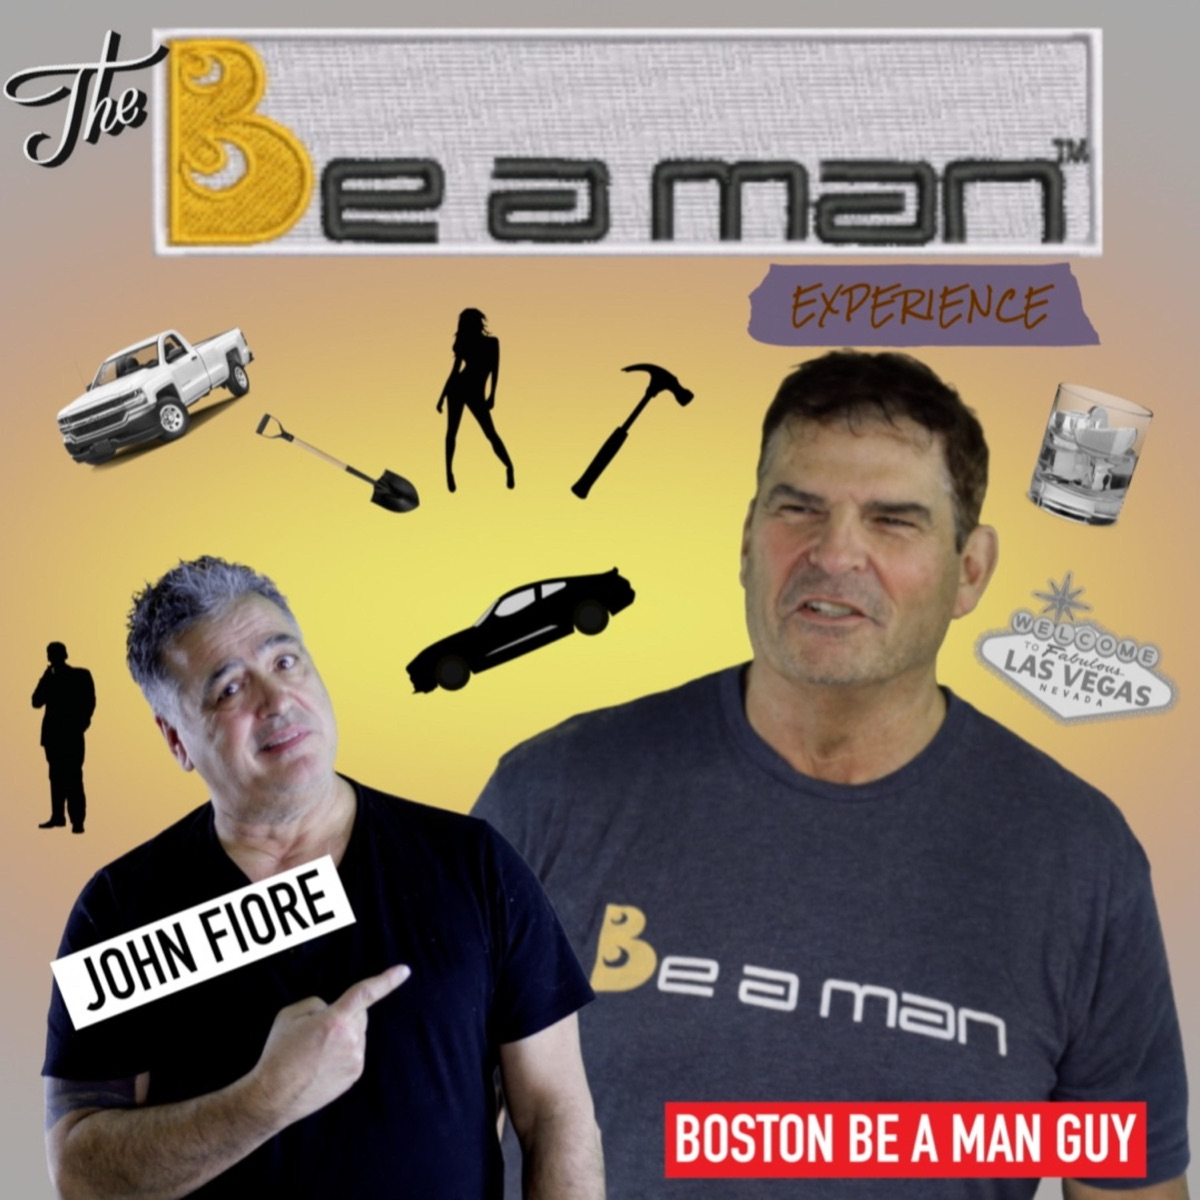 The Be a Man Experience